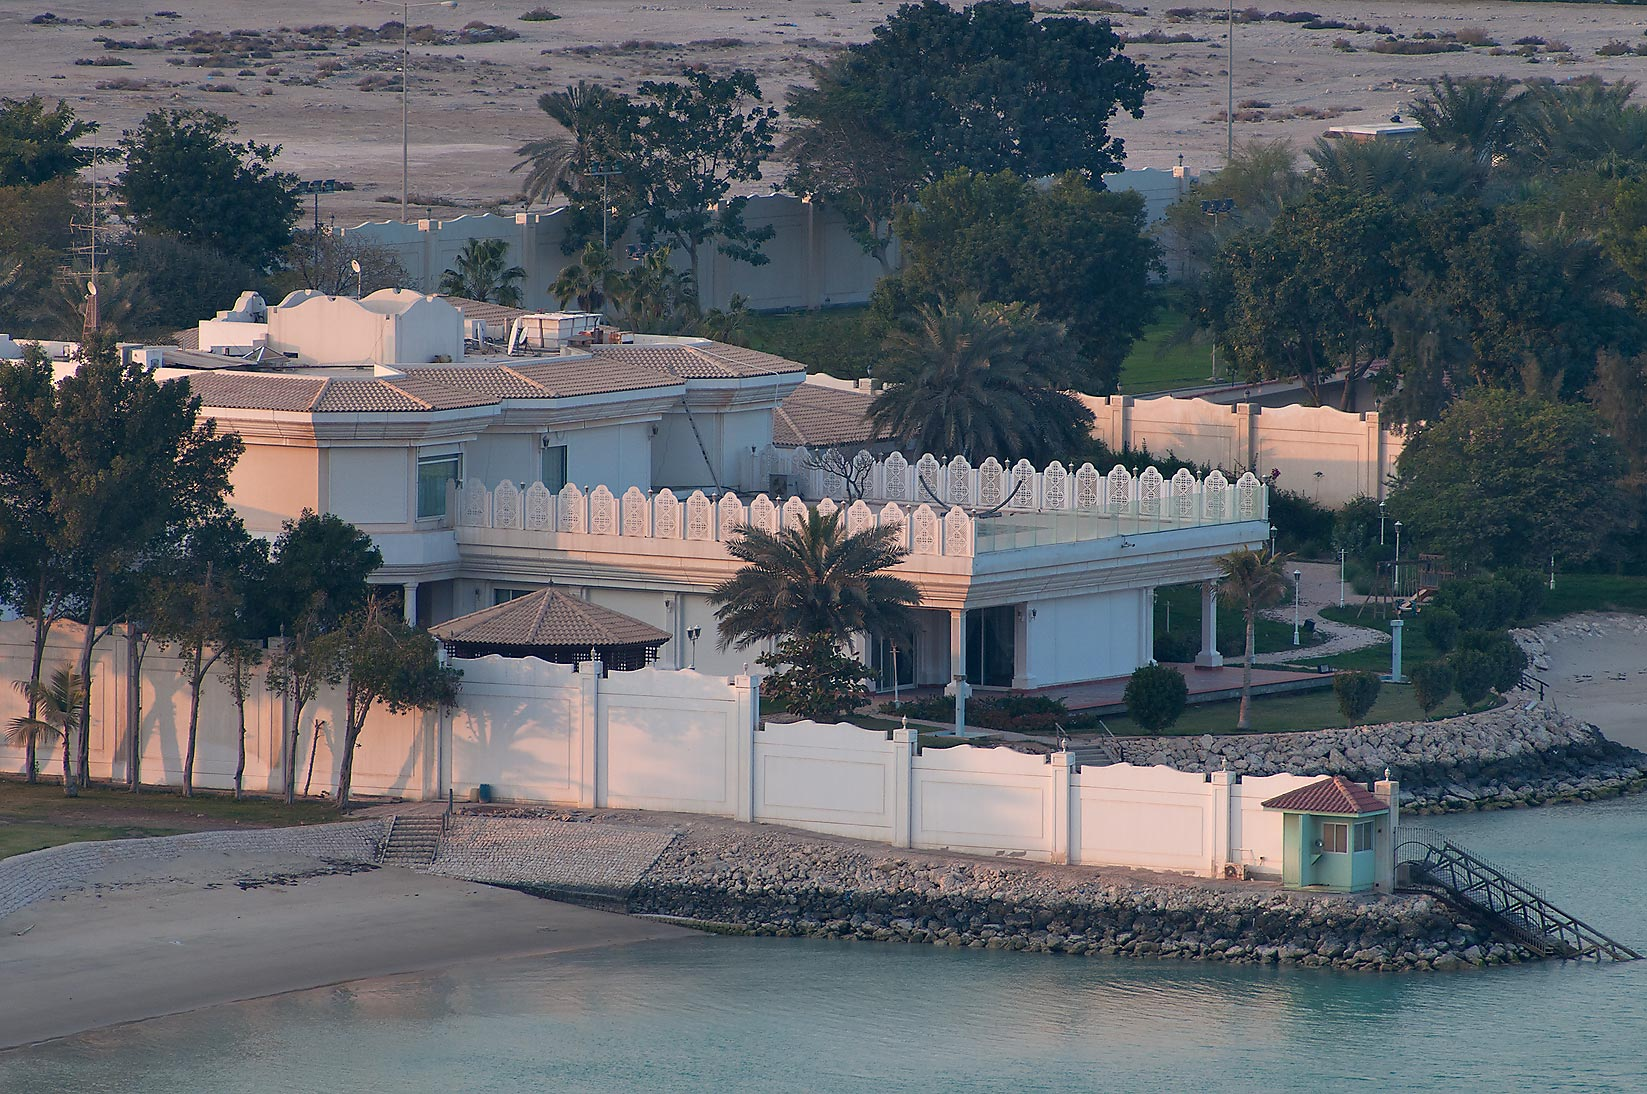 Palace of Sheikh Khalifa bin Hamad on a beach...2303 of ASAS Tower West. Doha, Qatar